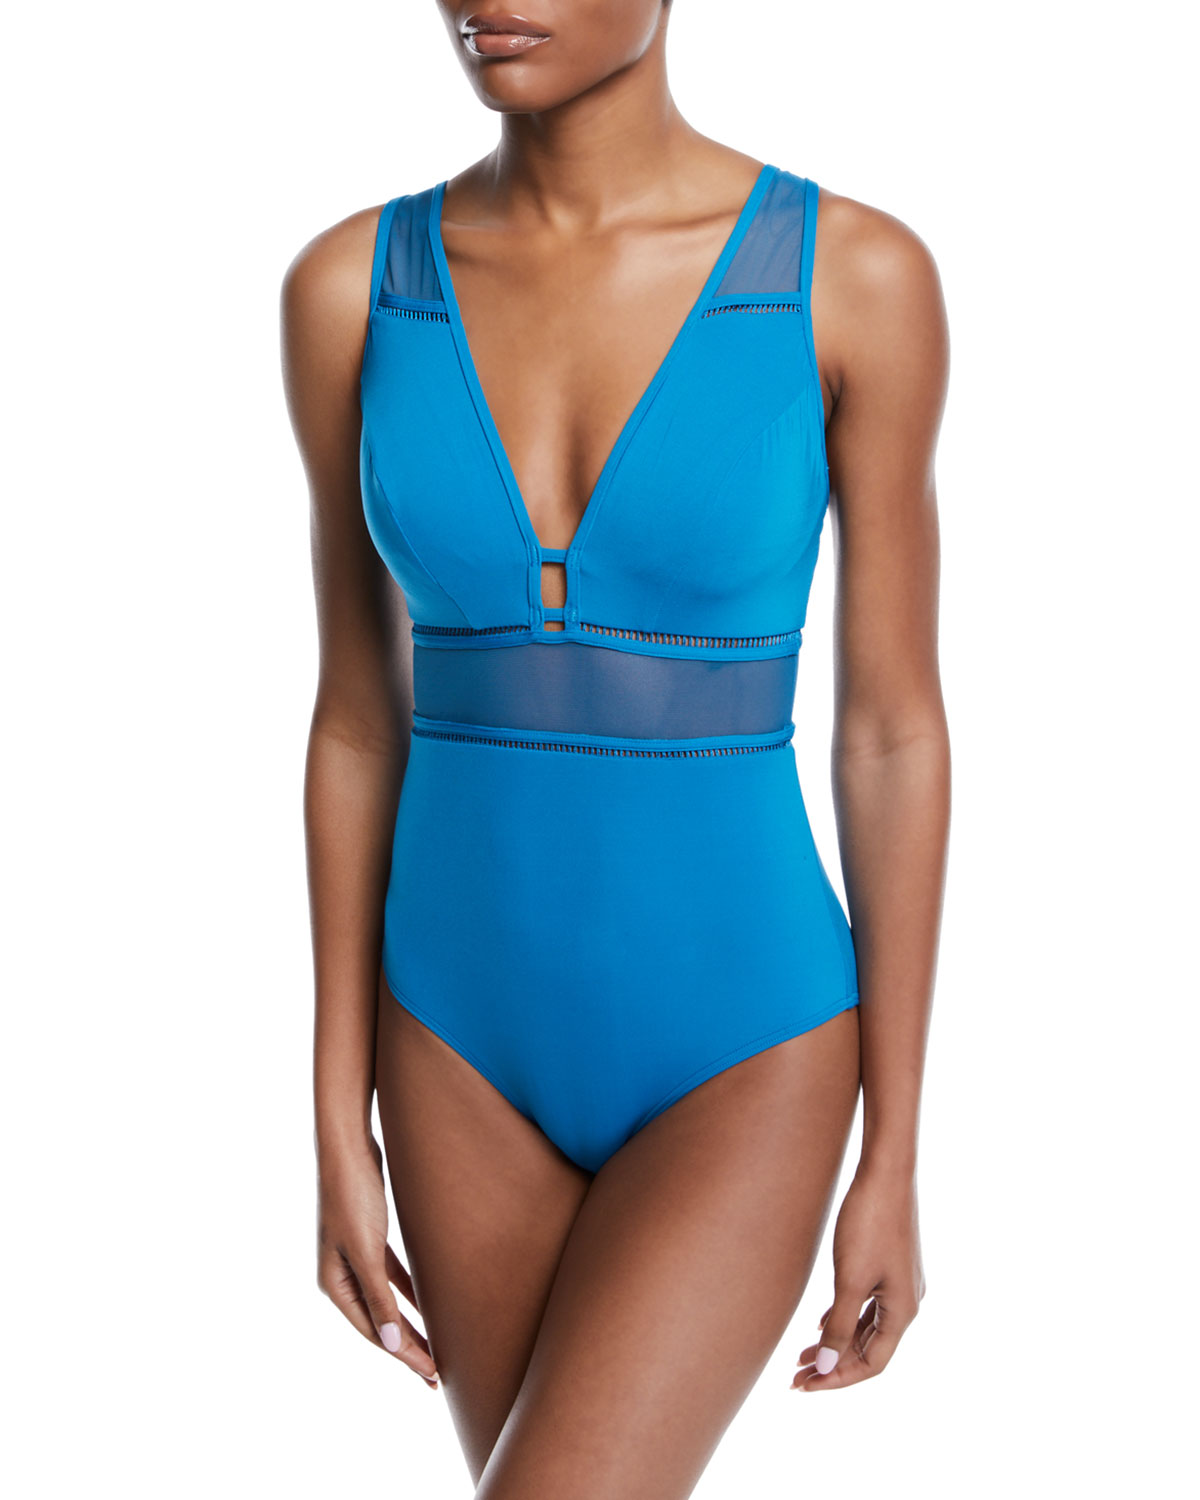 e85adcbd630 JETS by Jessika Allen Aspire Plunging Underwire One-Piece Swimsuit (D DD  Cups